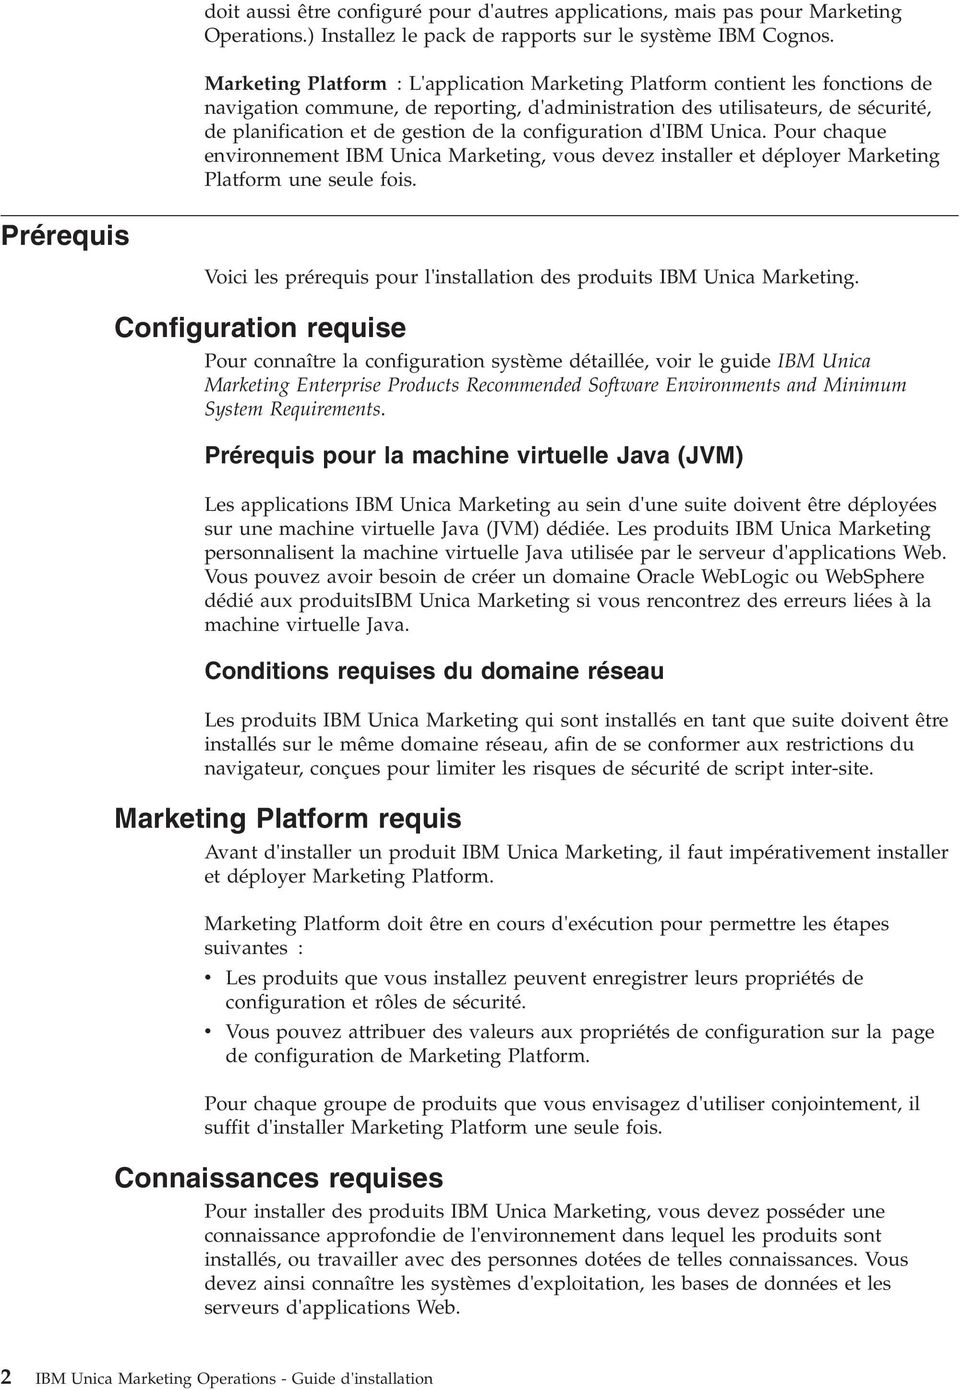 configuration d'ibm Unica. Pour chaque enironnement IBM Unica Marketing, ous deez installer et déployer Marketing Platform une seule fois.